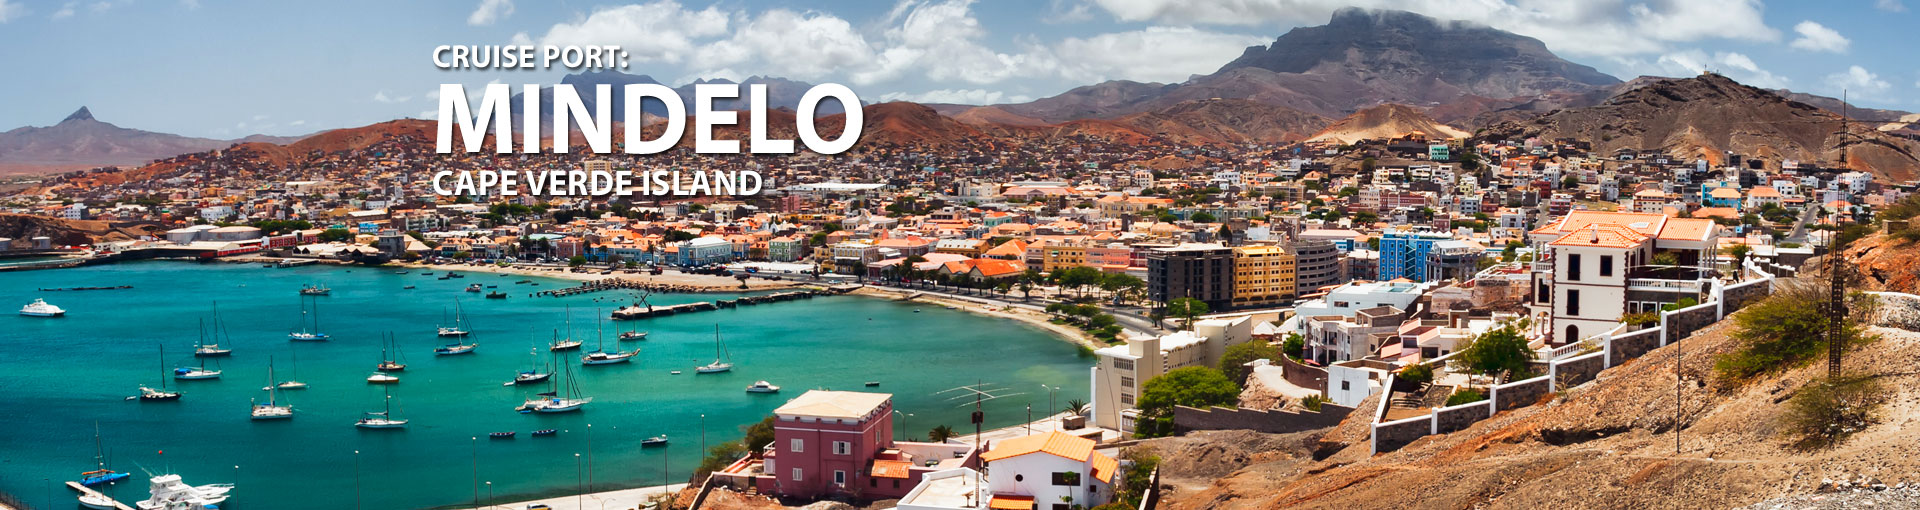 Cruises to Mindelo, Cape Verde Island